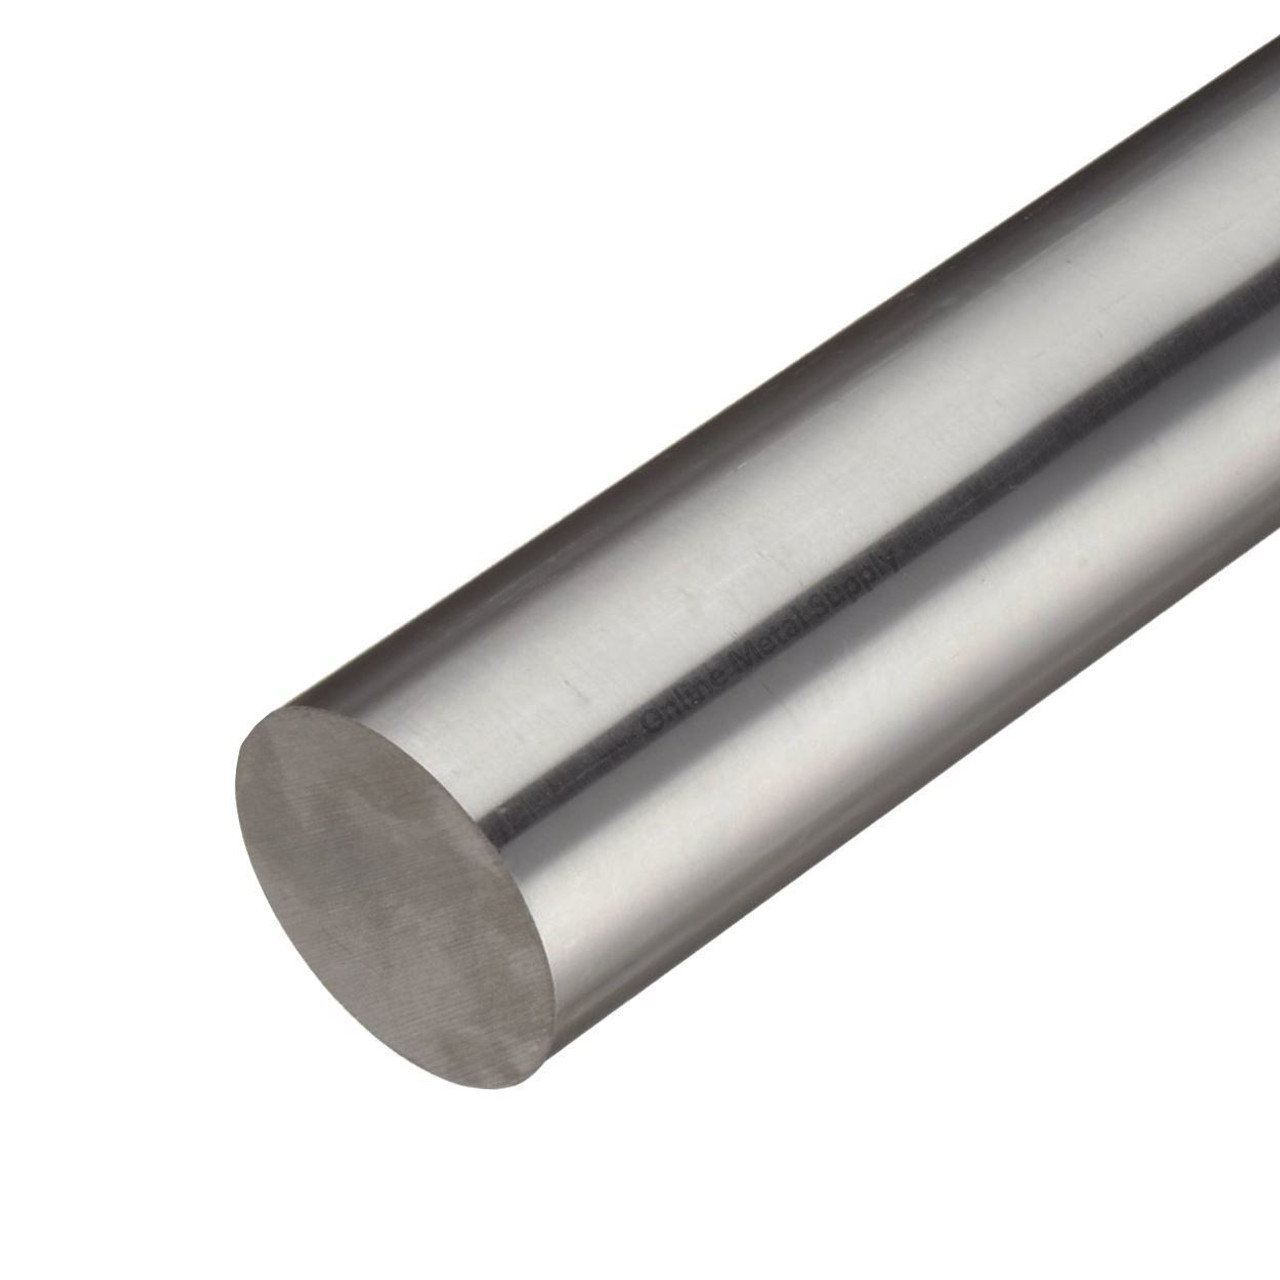 3.000 (3 inch) x 12 inches, 15-5 H1025 CF Stainless Steel Round Rod